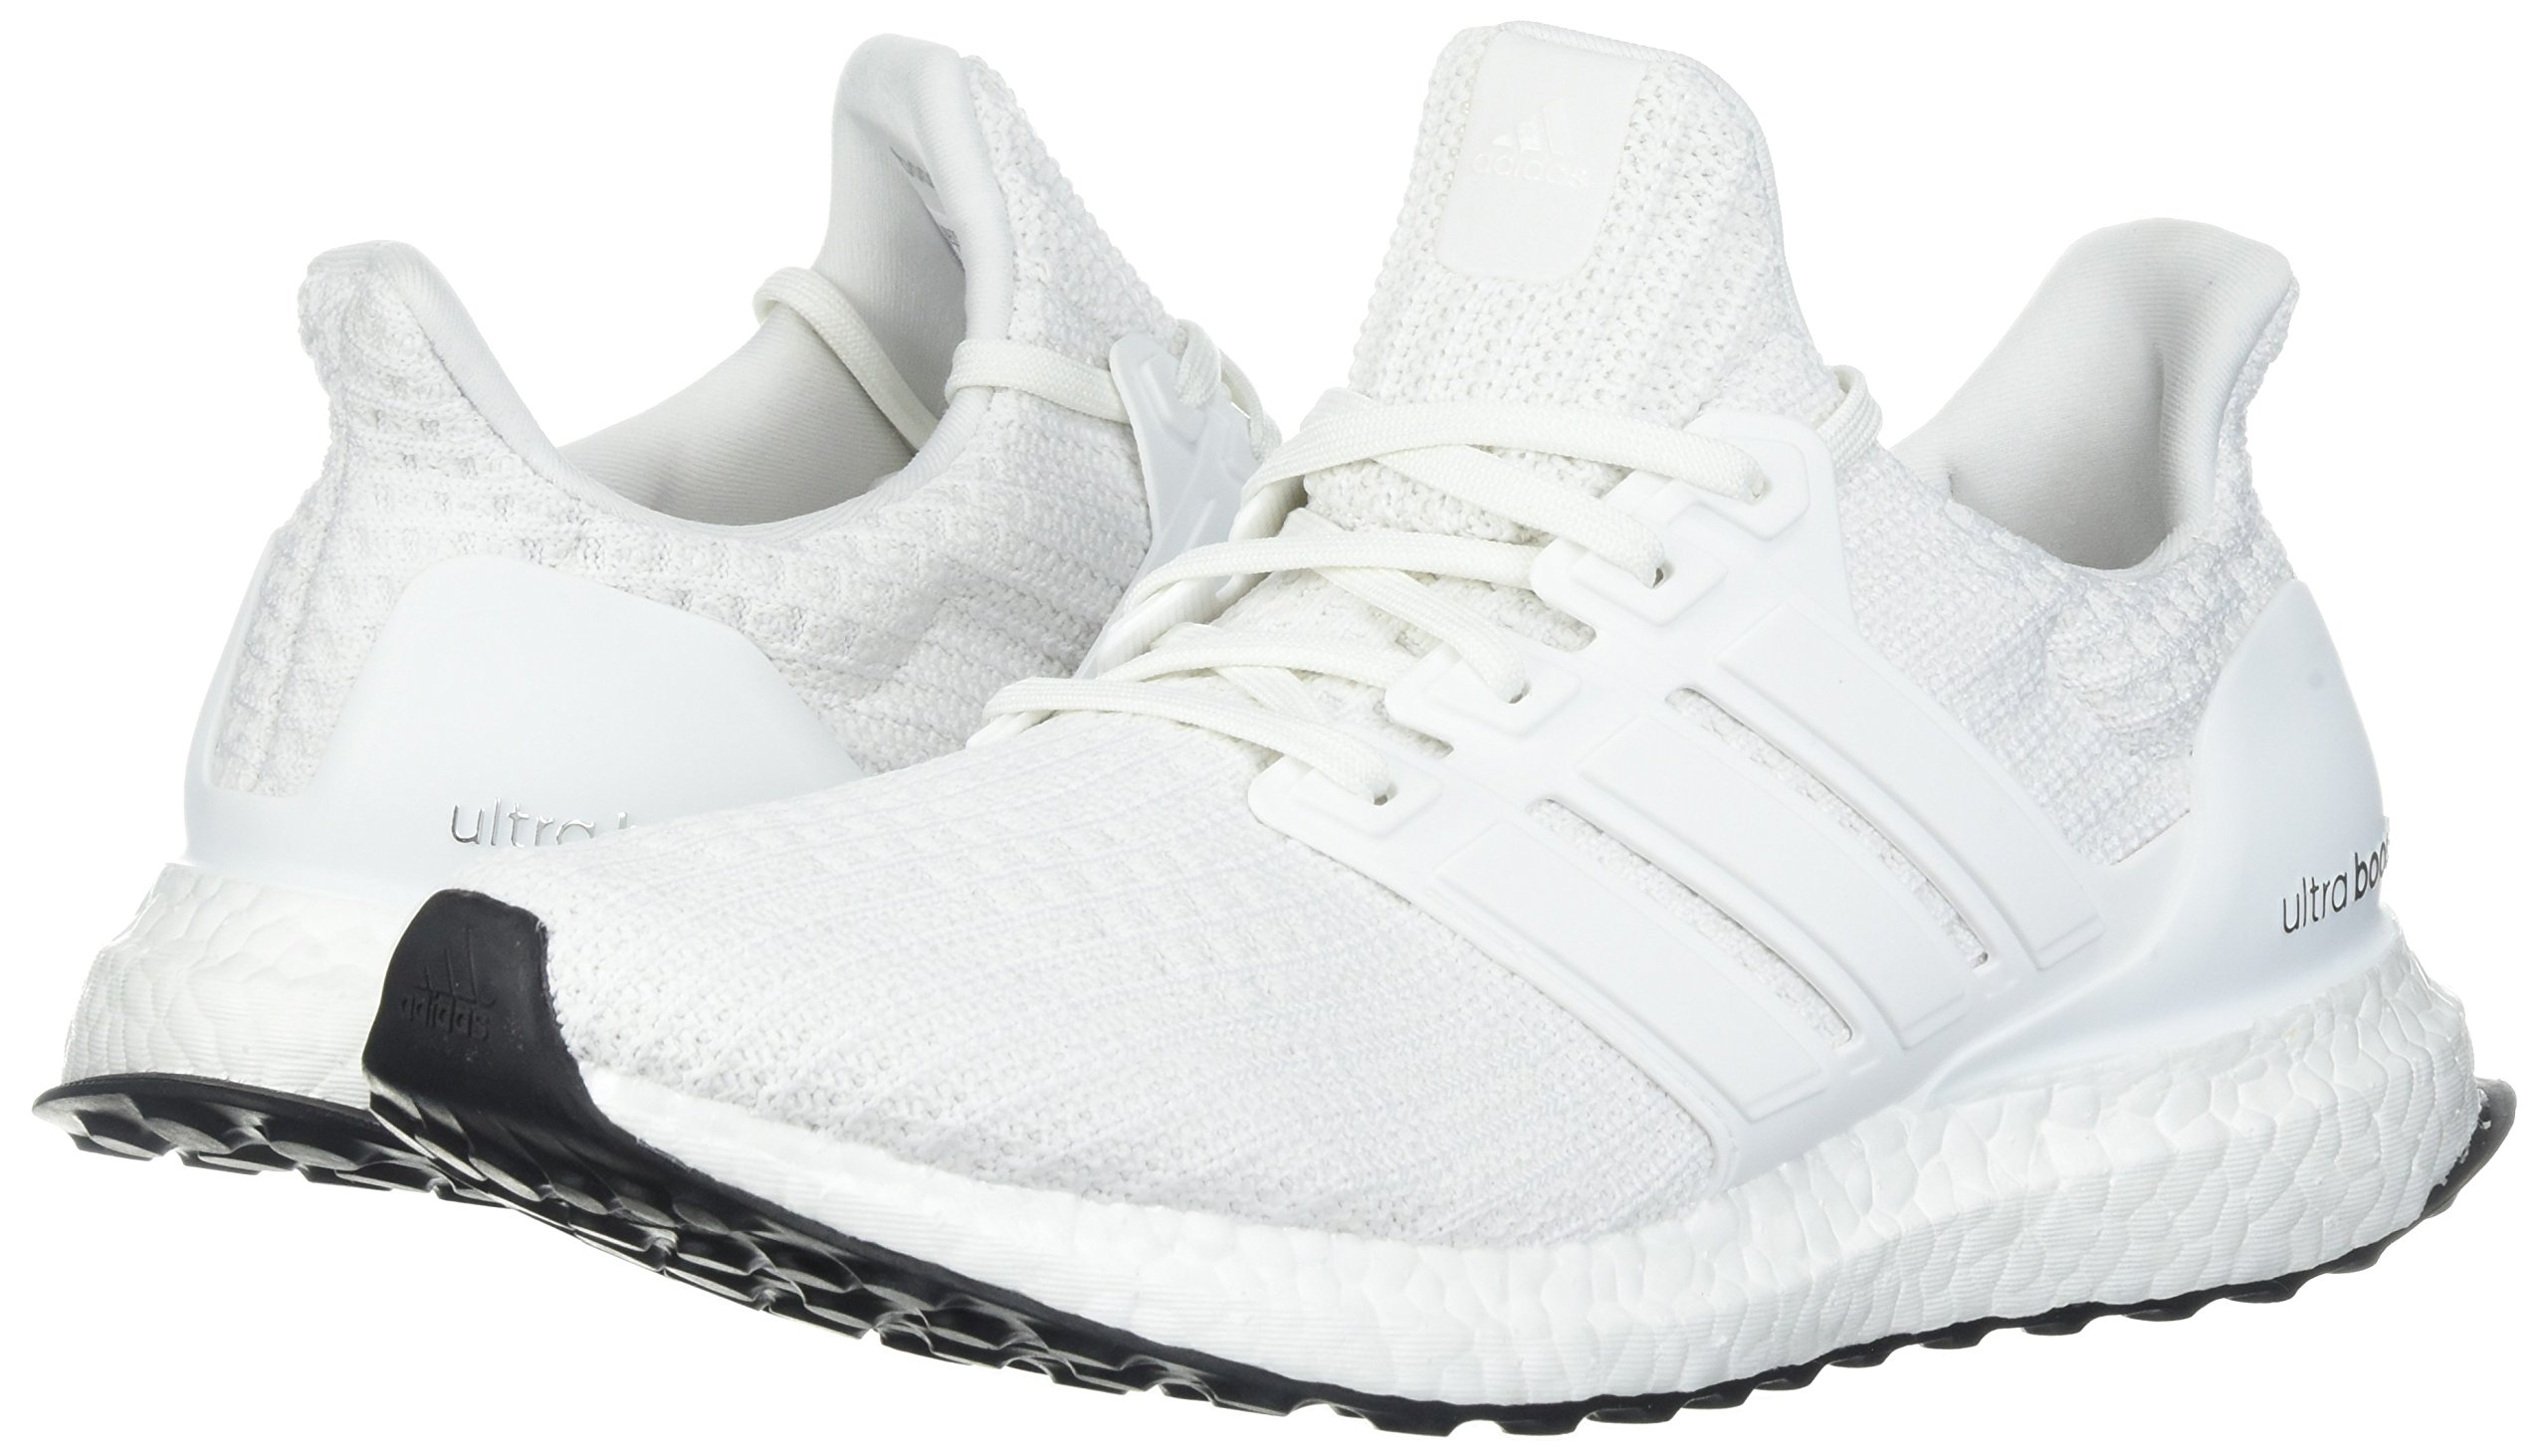 adidas Men's Ultraboost Road Running Shoe, White/White/White, 6.5 M US by adidas (Image #6)